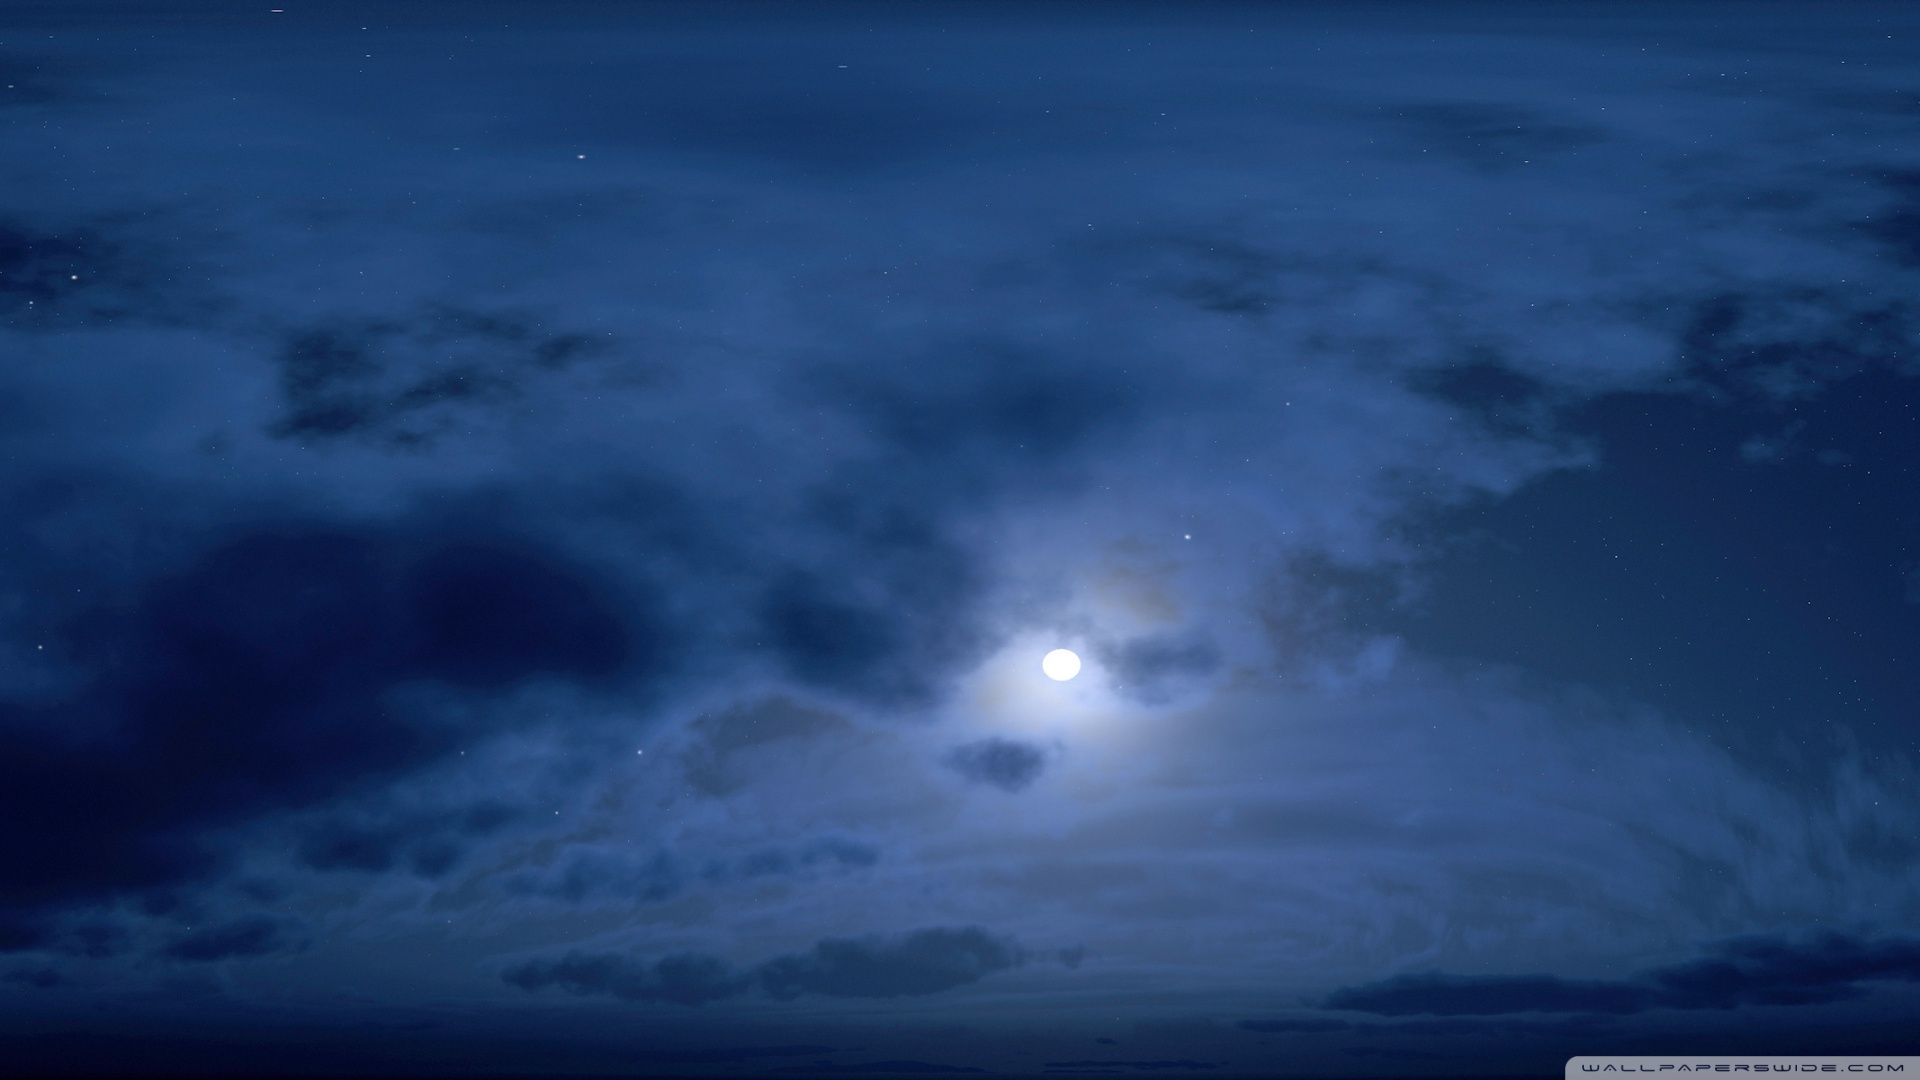 sky wallpaper night images 1920x1080 1920x1080